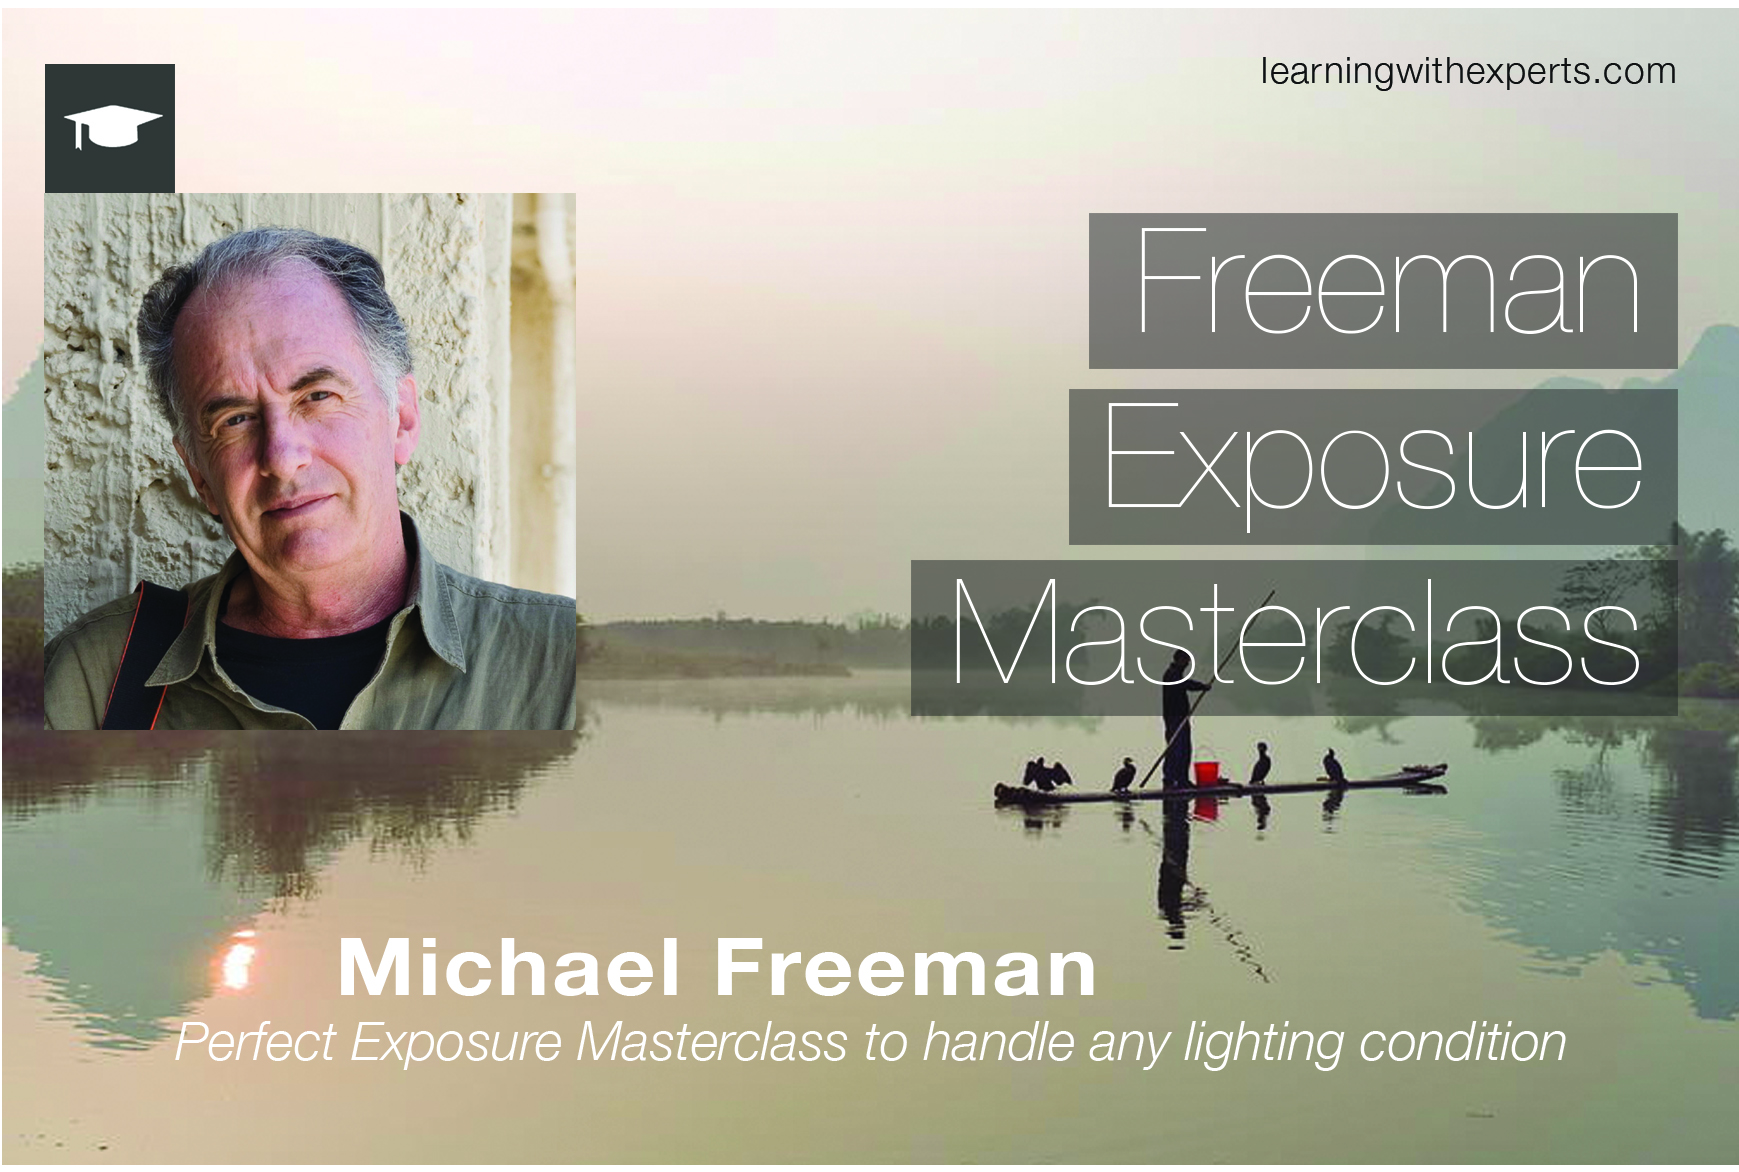 Get 50% off a Michael Freeman exposure course *Promotion*